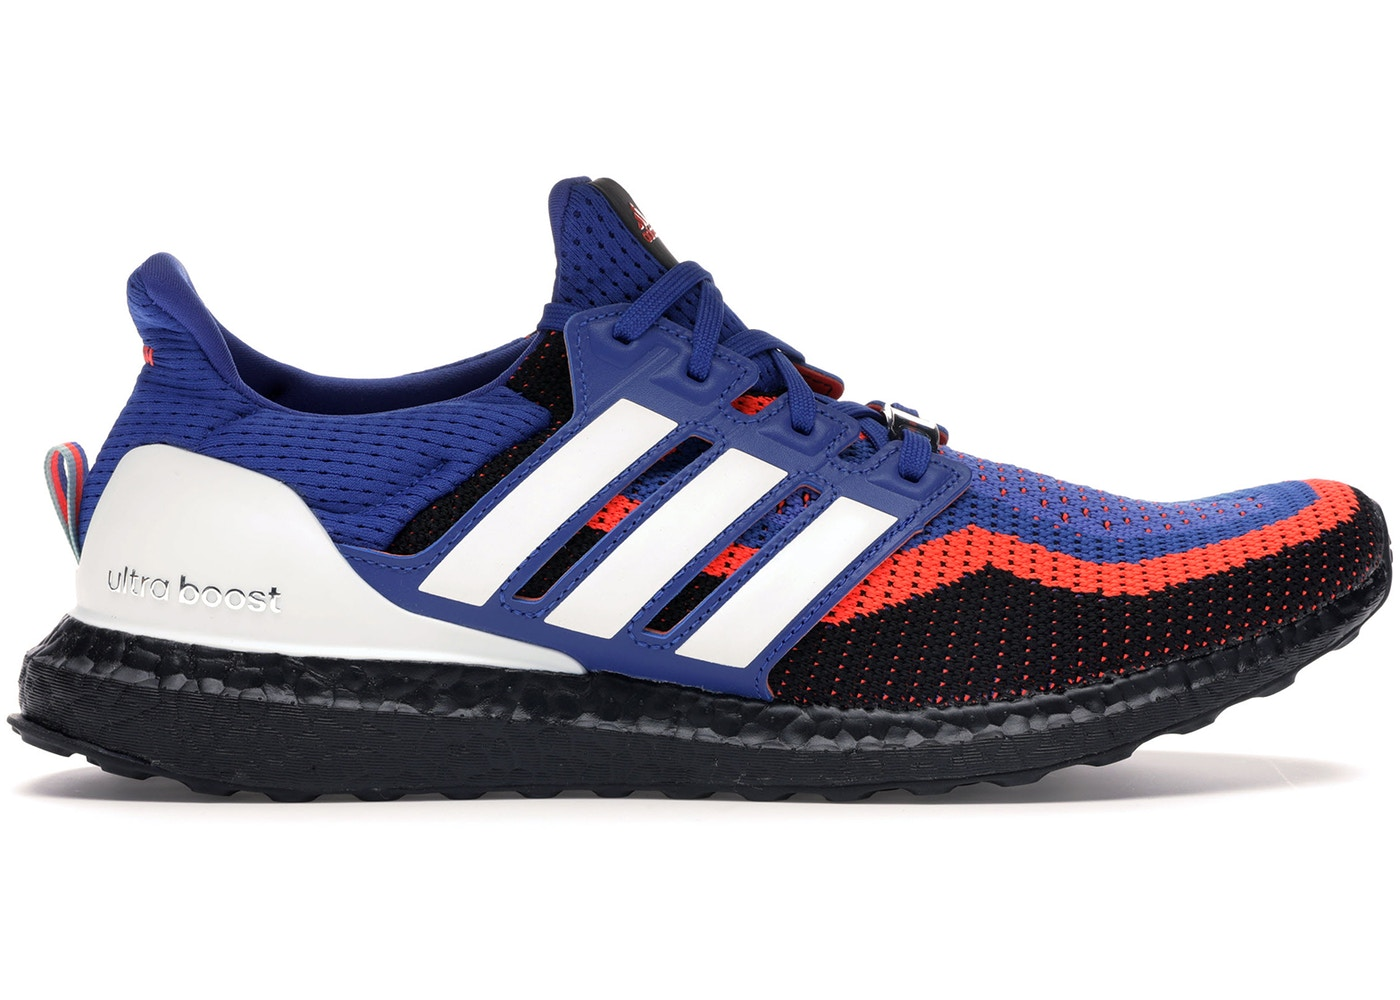 newest 6f05d f9915 adidas Ultra Boost Size 15 Shoes - Release Date